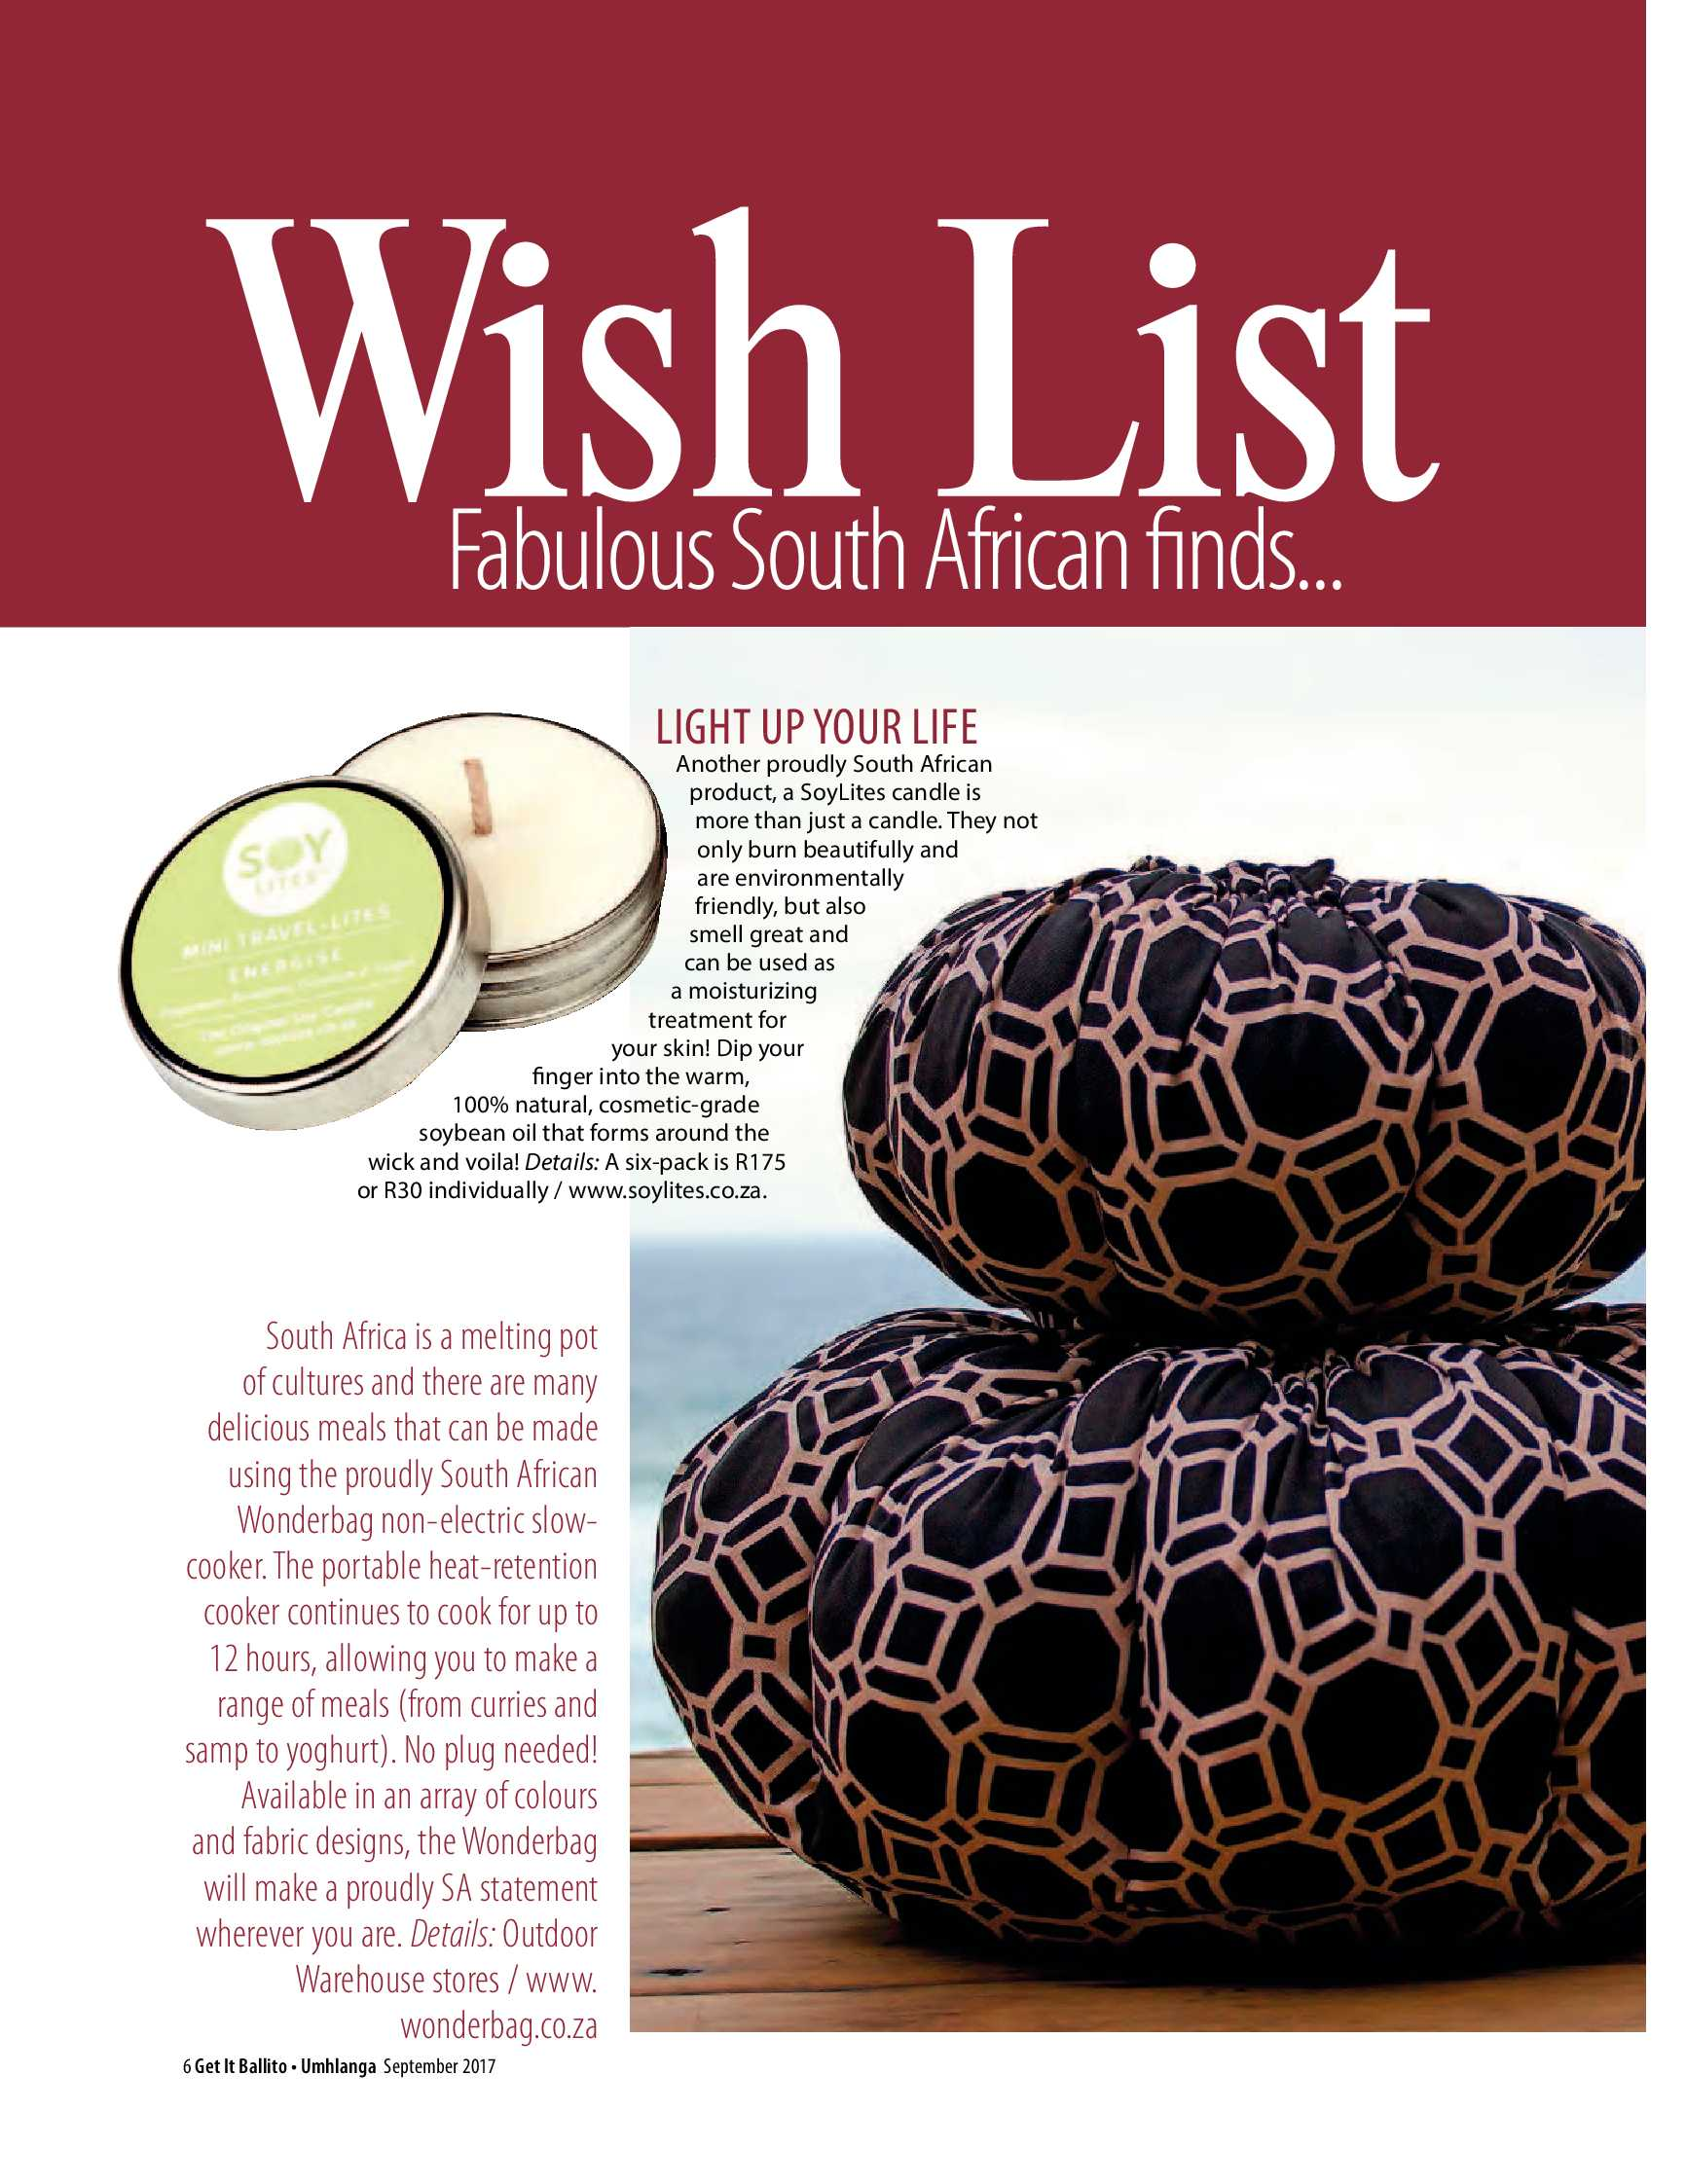 get-magazine-ballitoumhlanga-september-2017-epapers-page-8